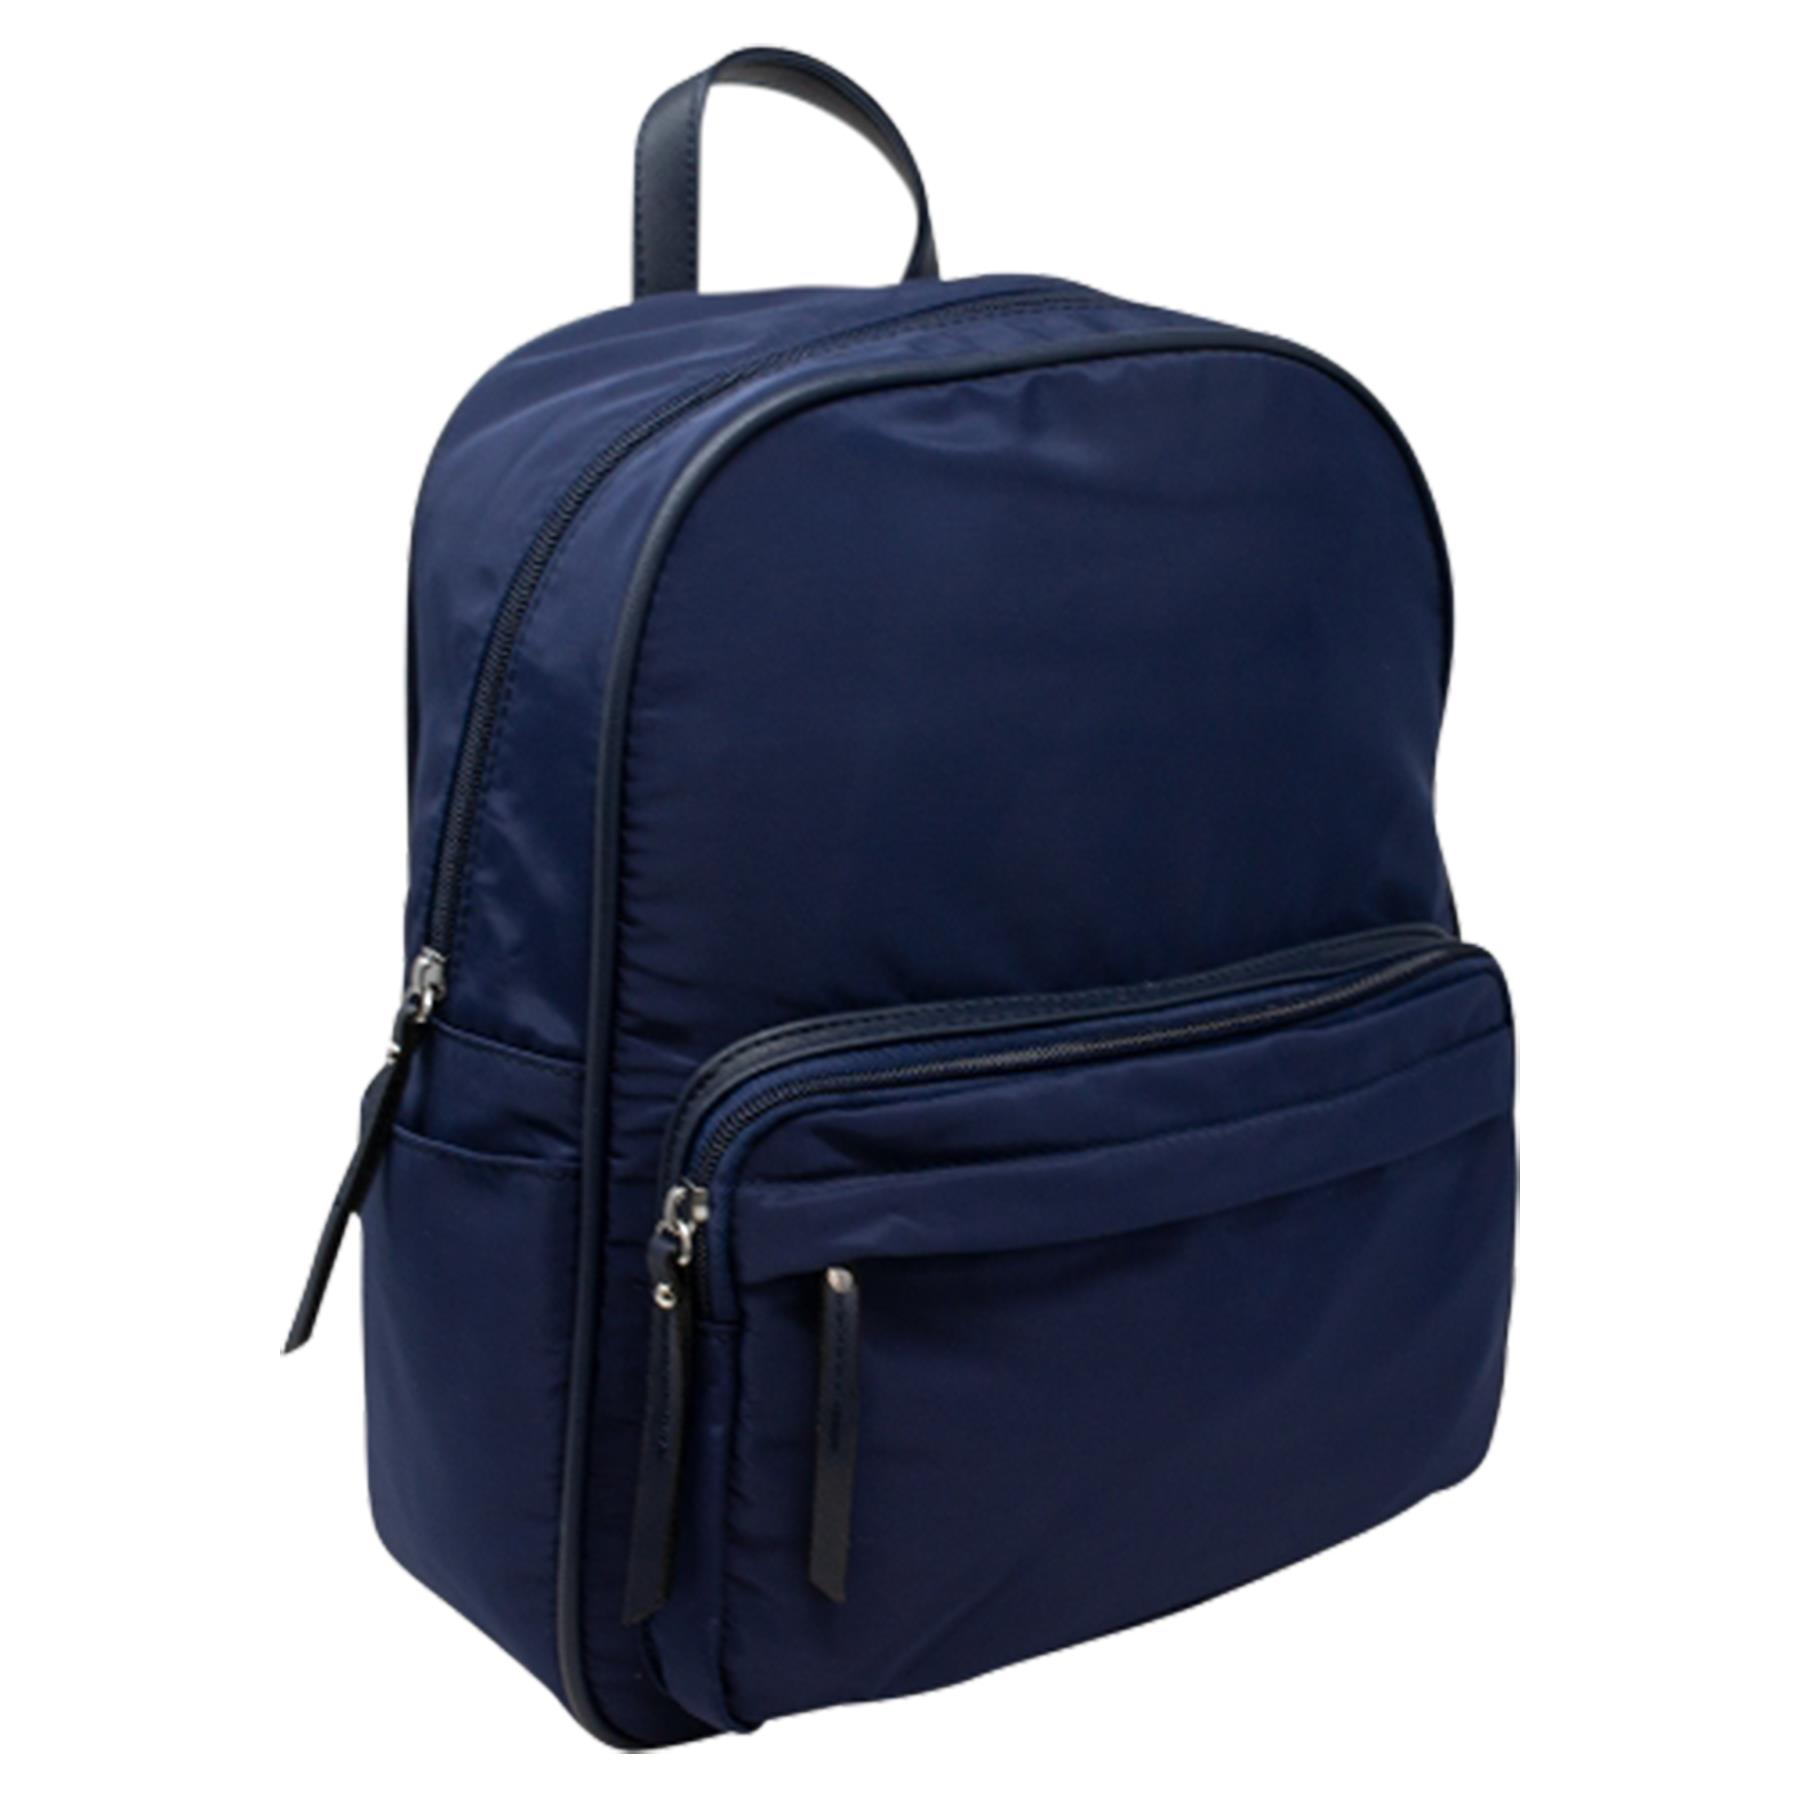 New-Unisex-Plain-Nylon-Showerproof-School-College-Backpack-Rucksack thumbnail 8